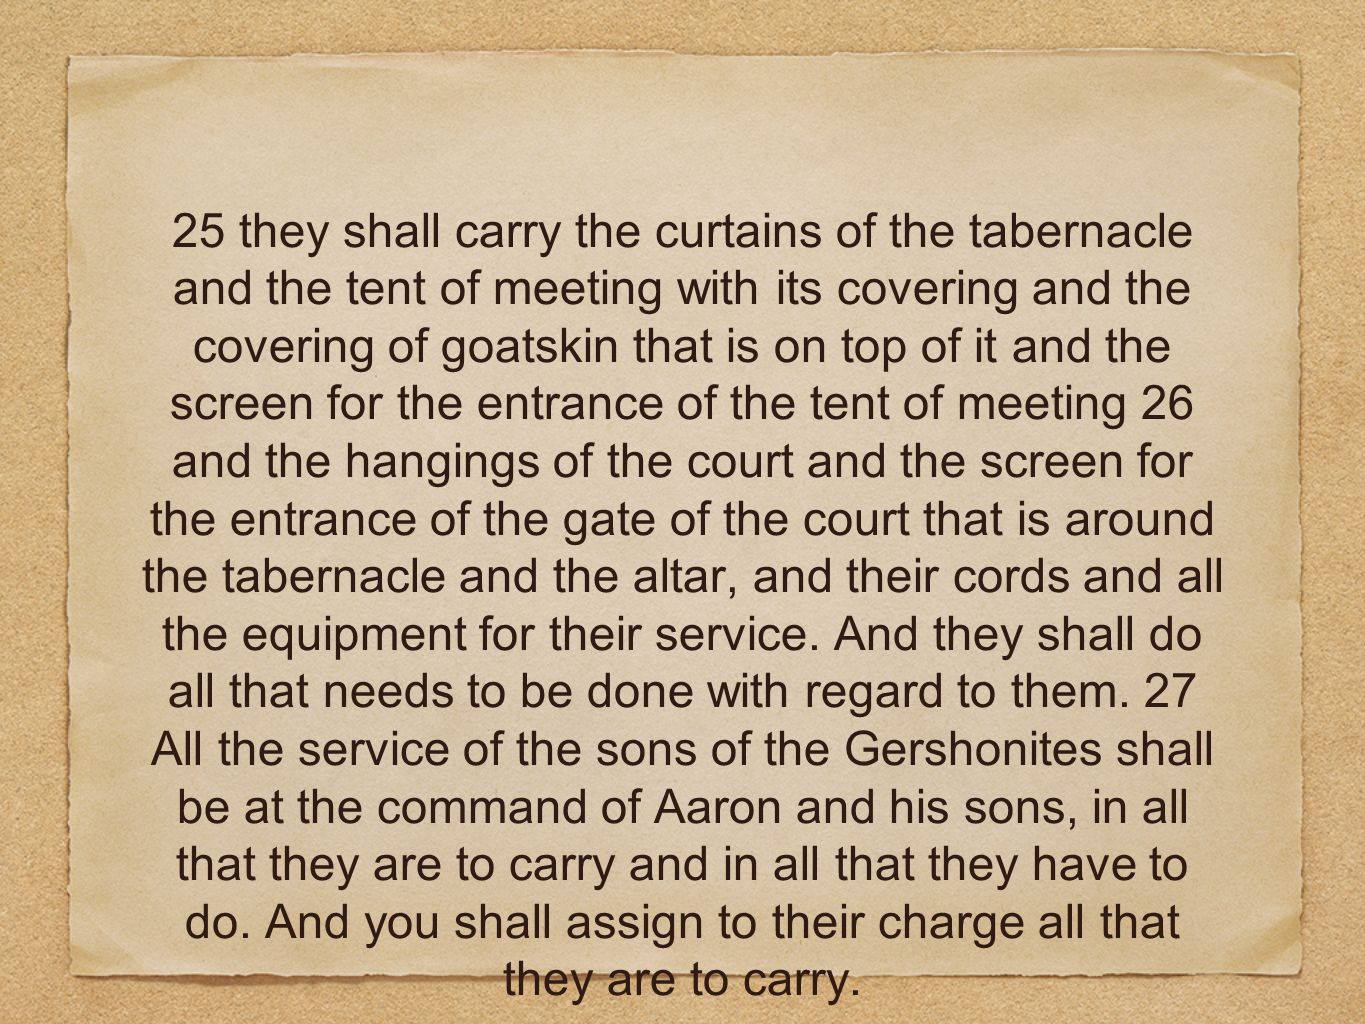 25 they shall carry the curtains of the tabernacle and the tent of meeting with its covering and the covering of goatskin that is on top of it and the screen for the entrance of the tent of meeting 26 and the hangings of the court and the screen for the entrance of the gate of the court that is around the tabernacle and the altar, and their cords and all the equipment for their service.